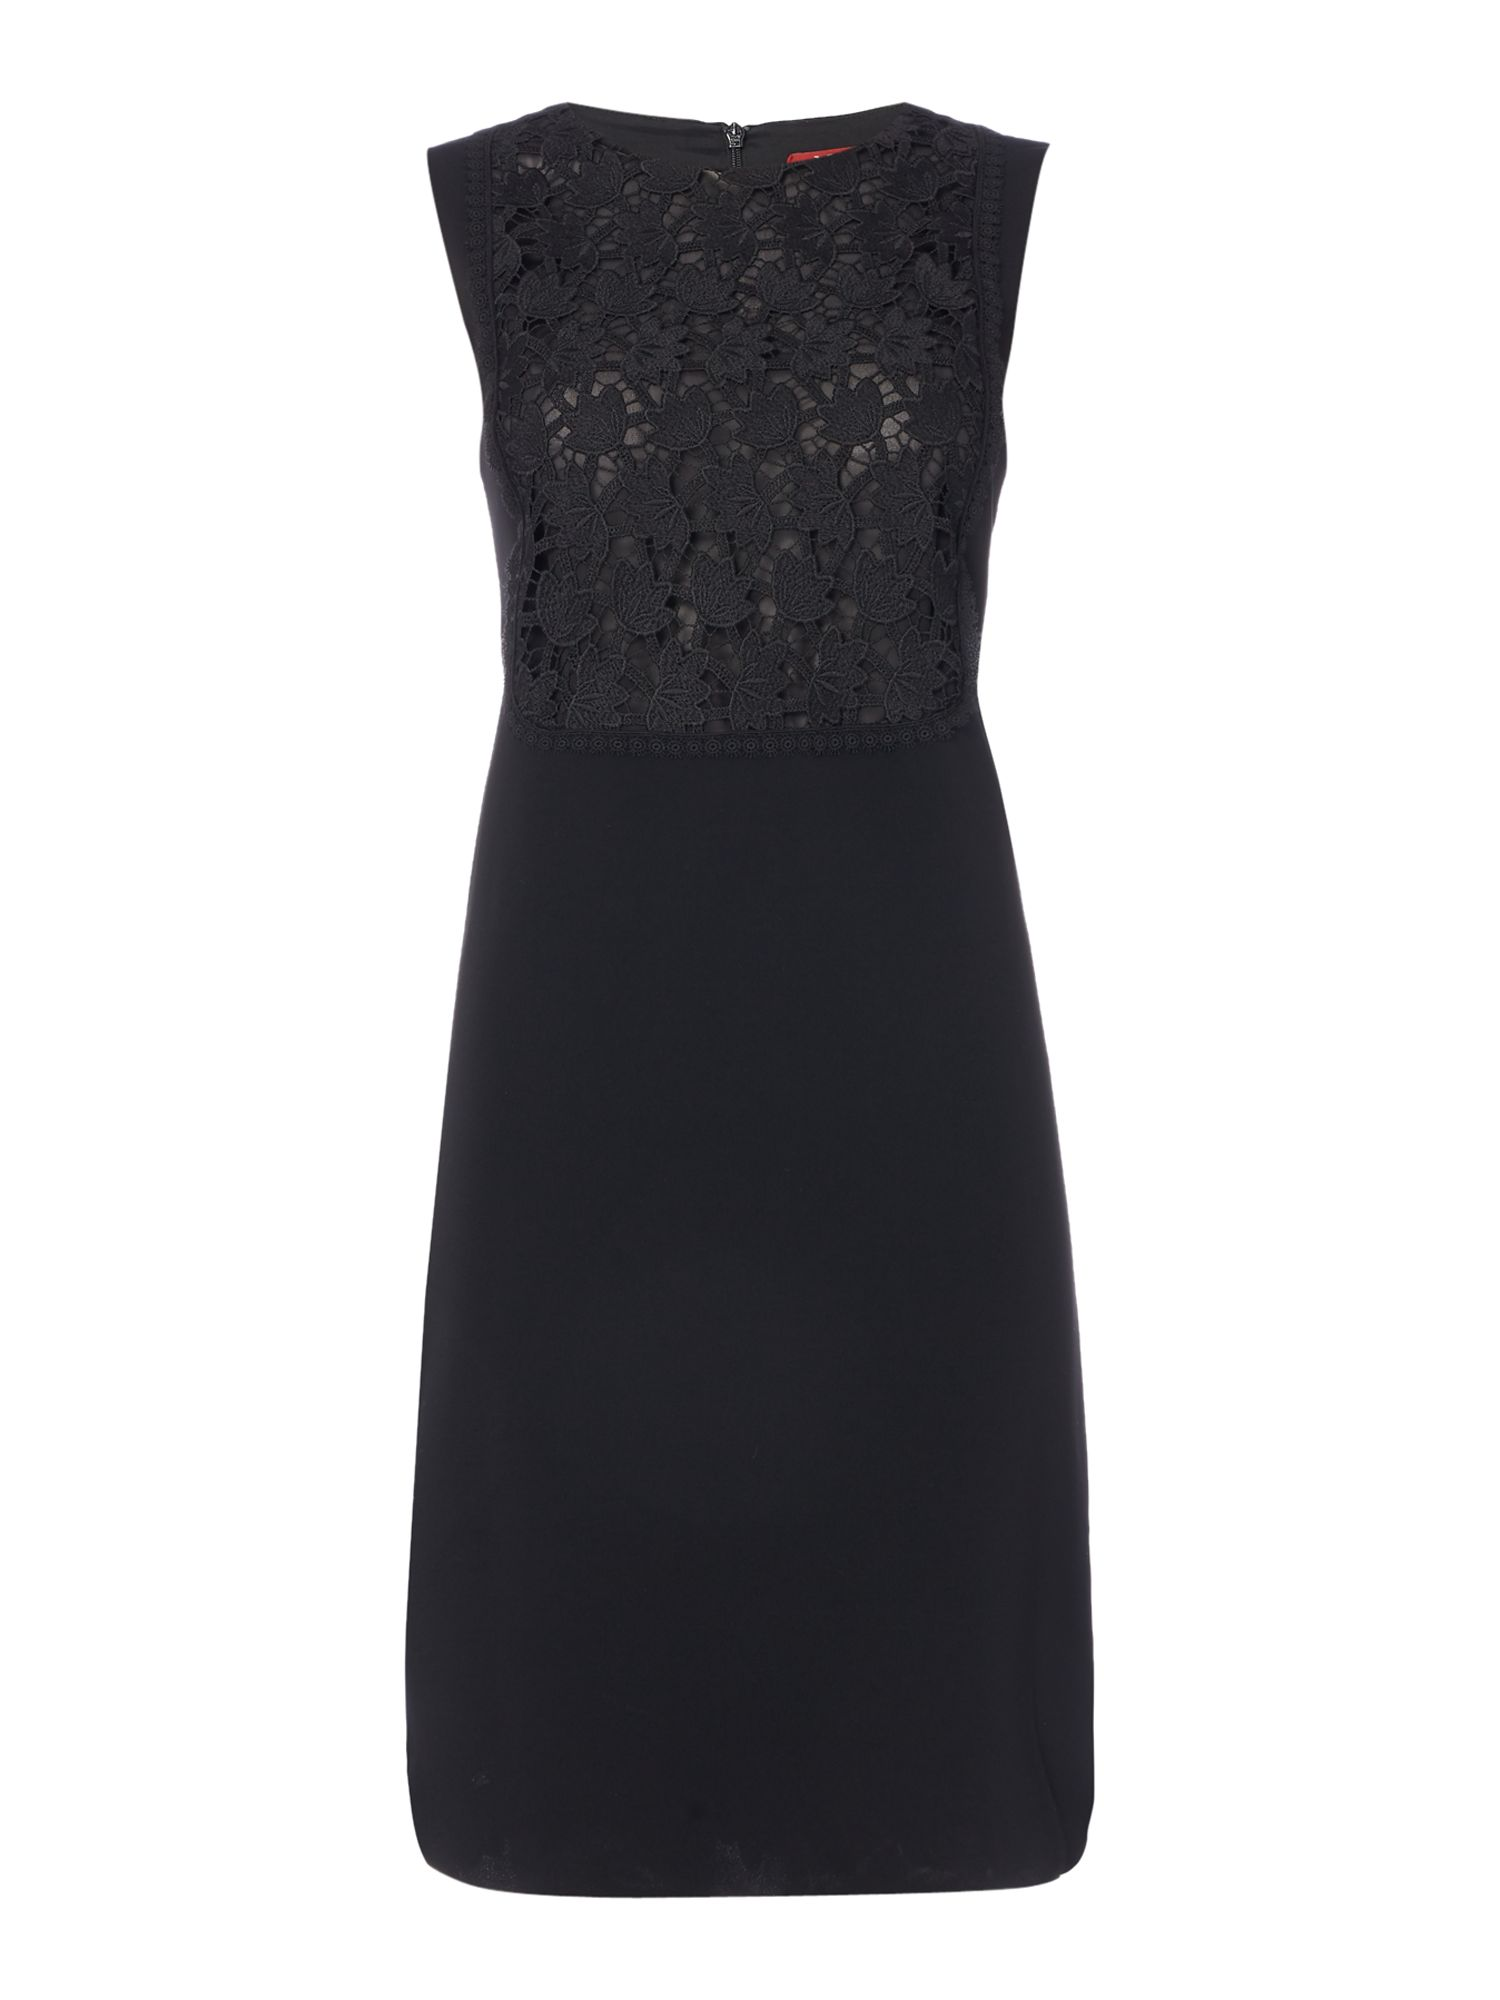 Max Mara Studio Angri black lace sleeveless shift dress, Black